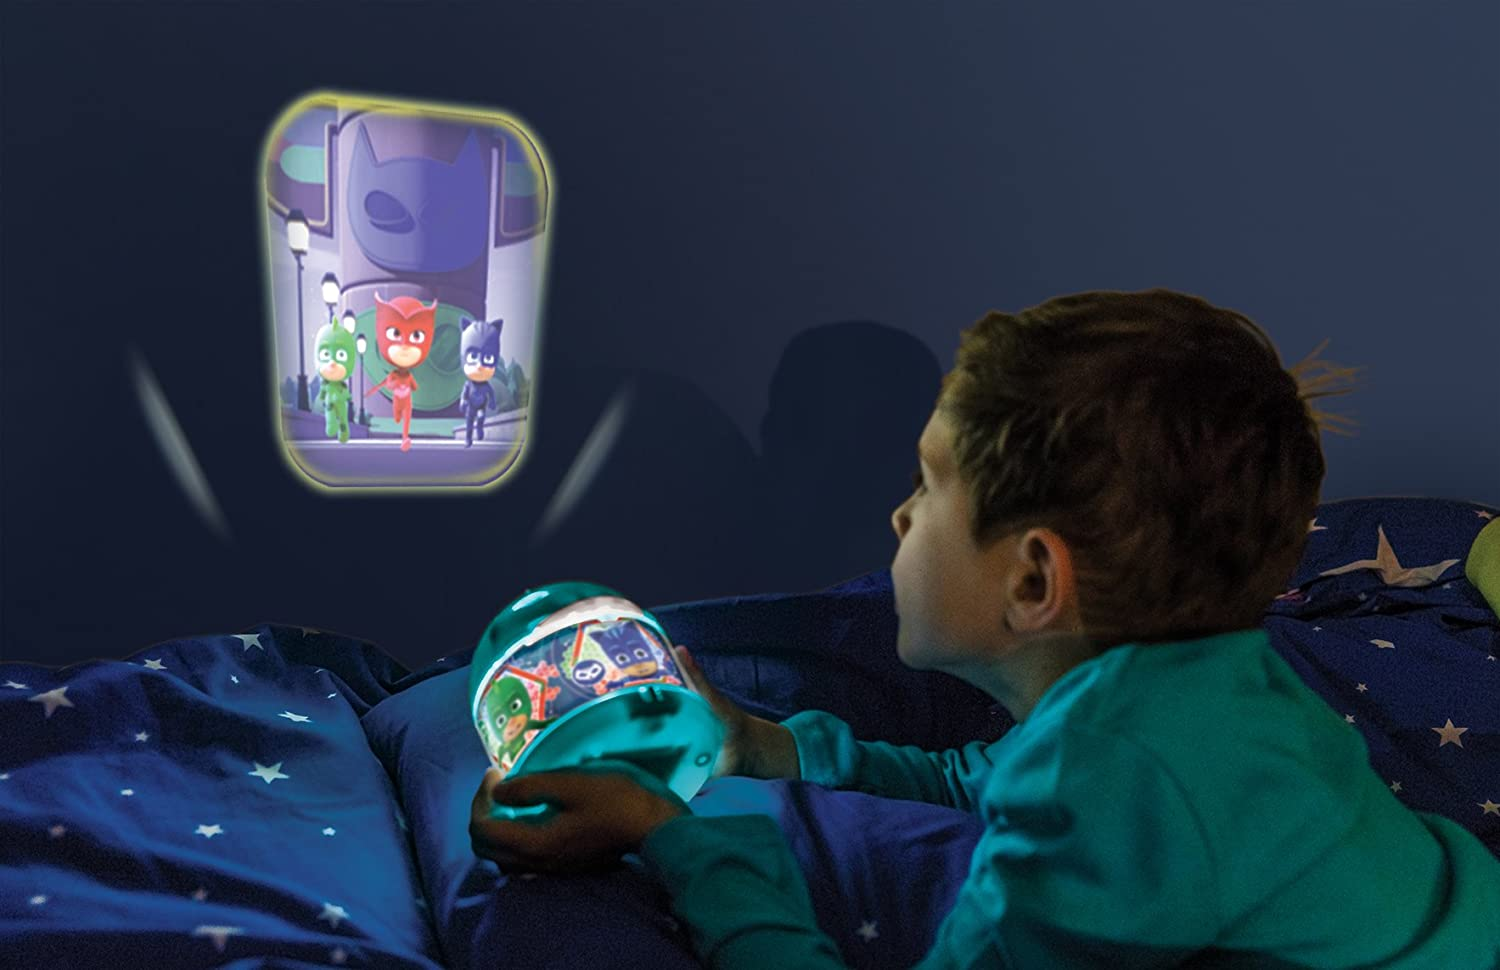 PJ Masks - Proyector de luz, acrílico, color turquesa: Amazon.es ...